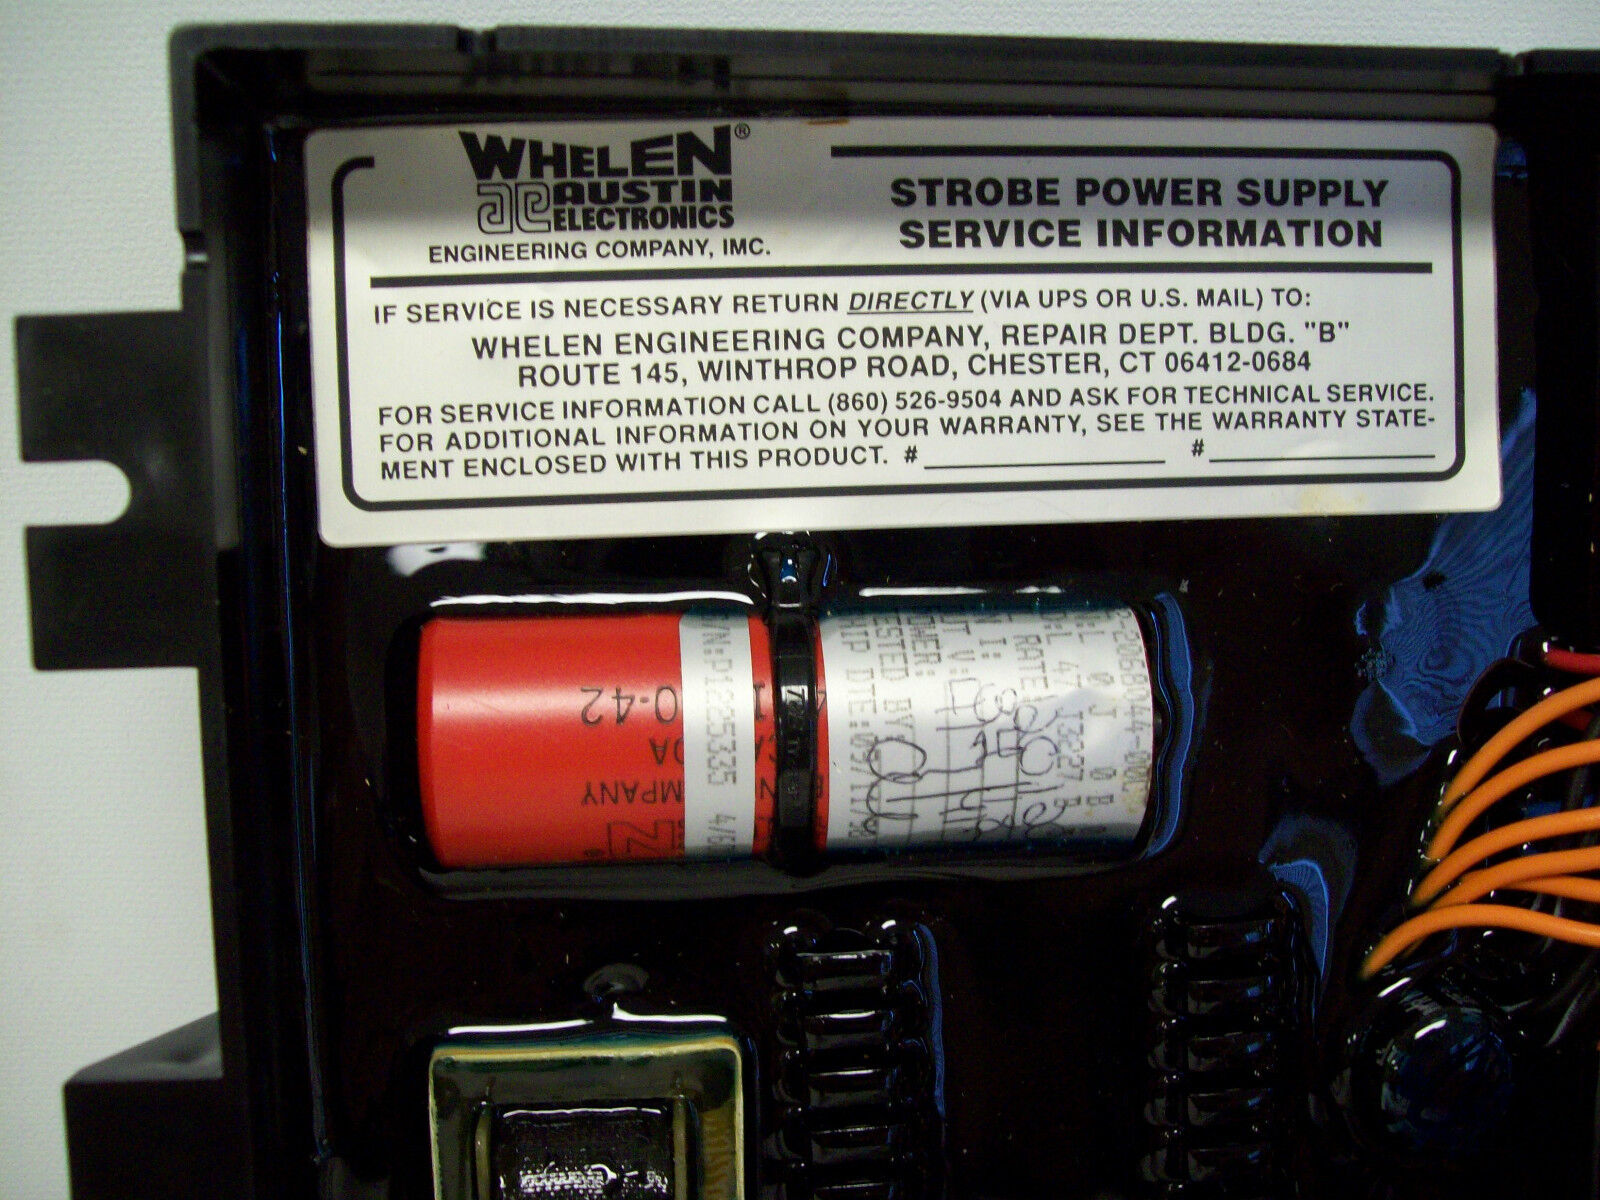 Whelen Strobe Power Supply Repair 9m4s Wiring 5 Of 7 6 Output Mpdel Vpps6c Pt01 0262264